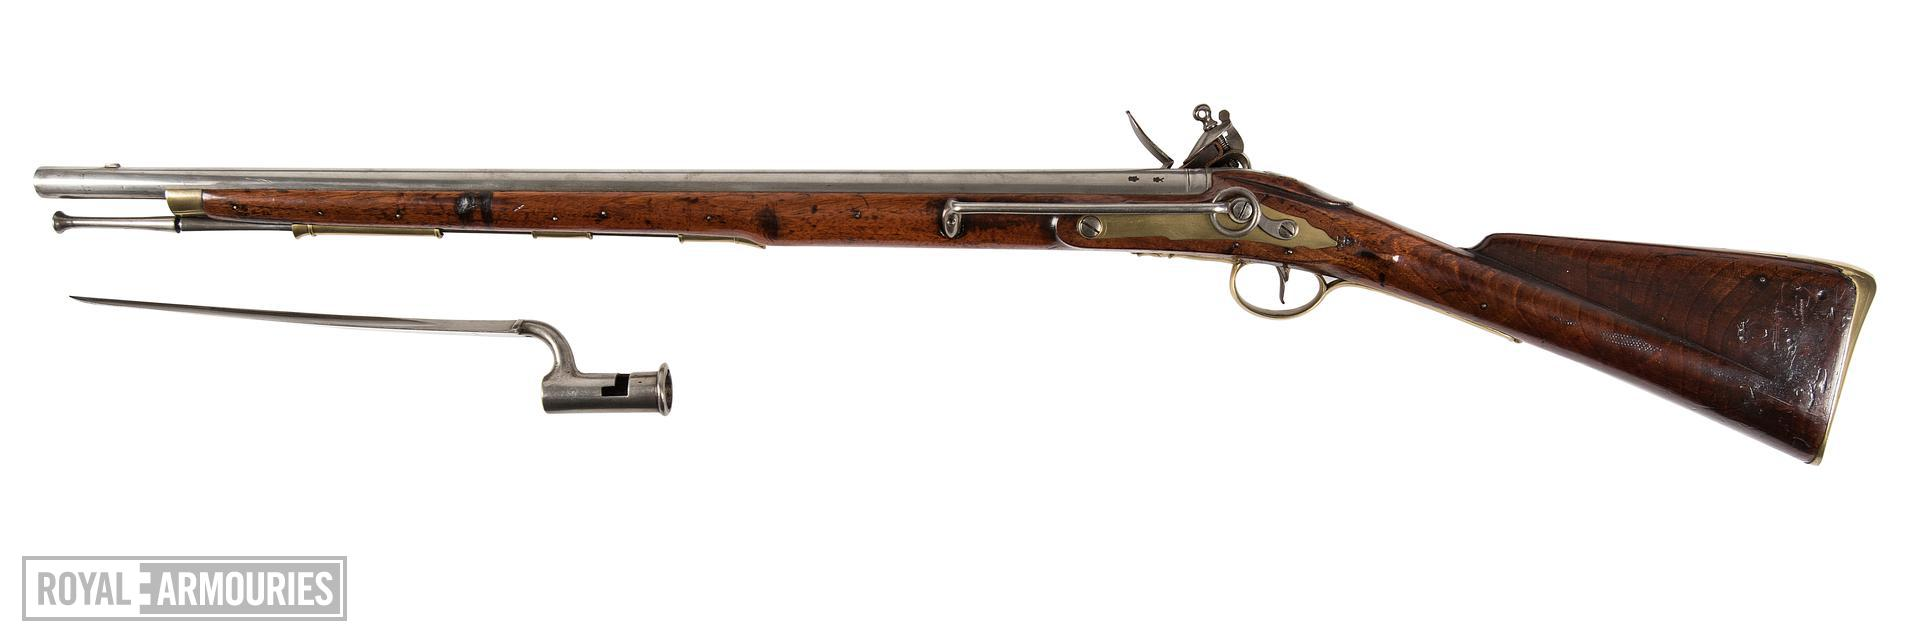 Flintlock muzzle-loading military Eliott Light Dragoon Carbine. Pattern 1773, England, about 1790 fitted with socket bayonet, Europe, about 1790 (XII.165 X.102)